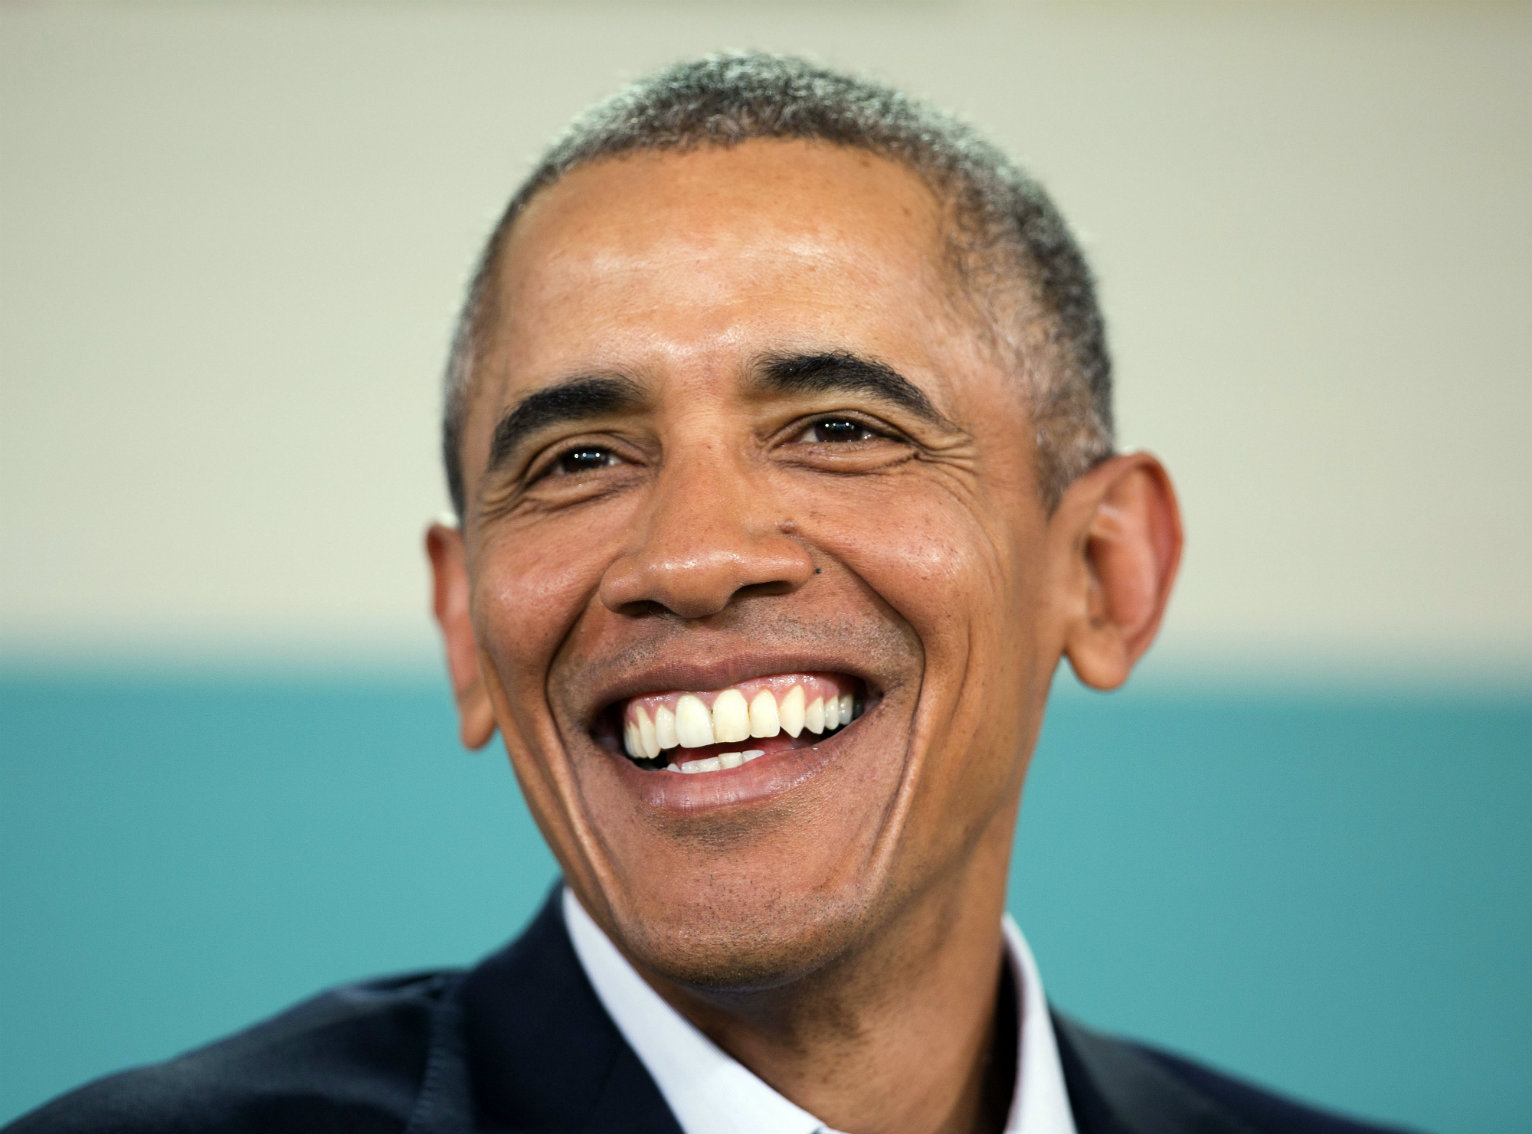 barack obama law school thesis President barack obama has led a unique and amazing life president barack obama at punahou high school 1979 updated on july 1, 2014 tmbridgeland more is the community he organized in chicago now rich, racially integrated and peaceful when he was in law school, what great thesis did.